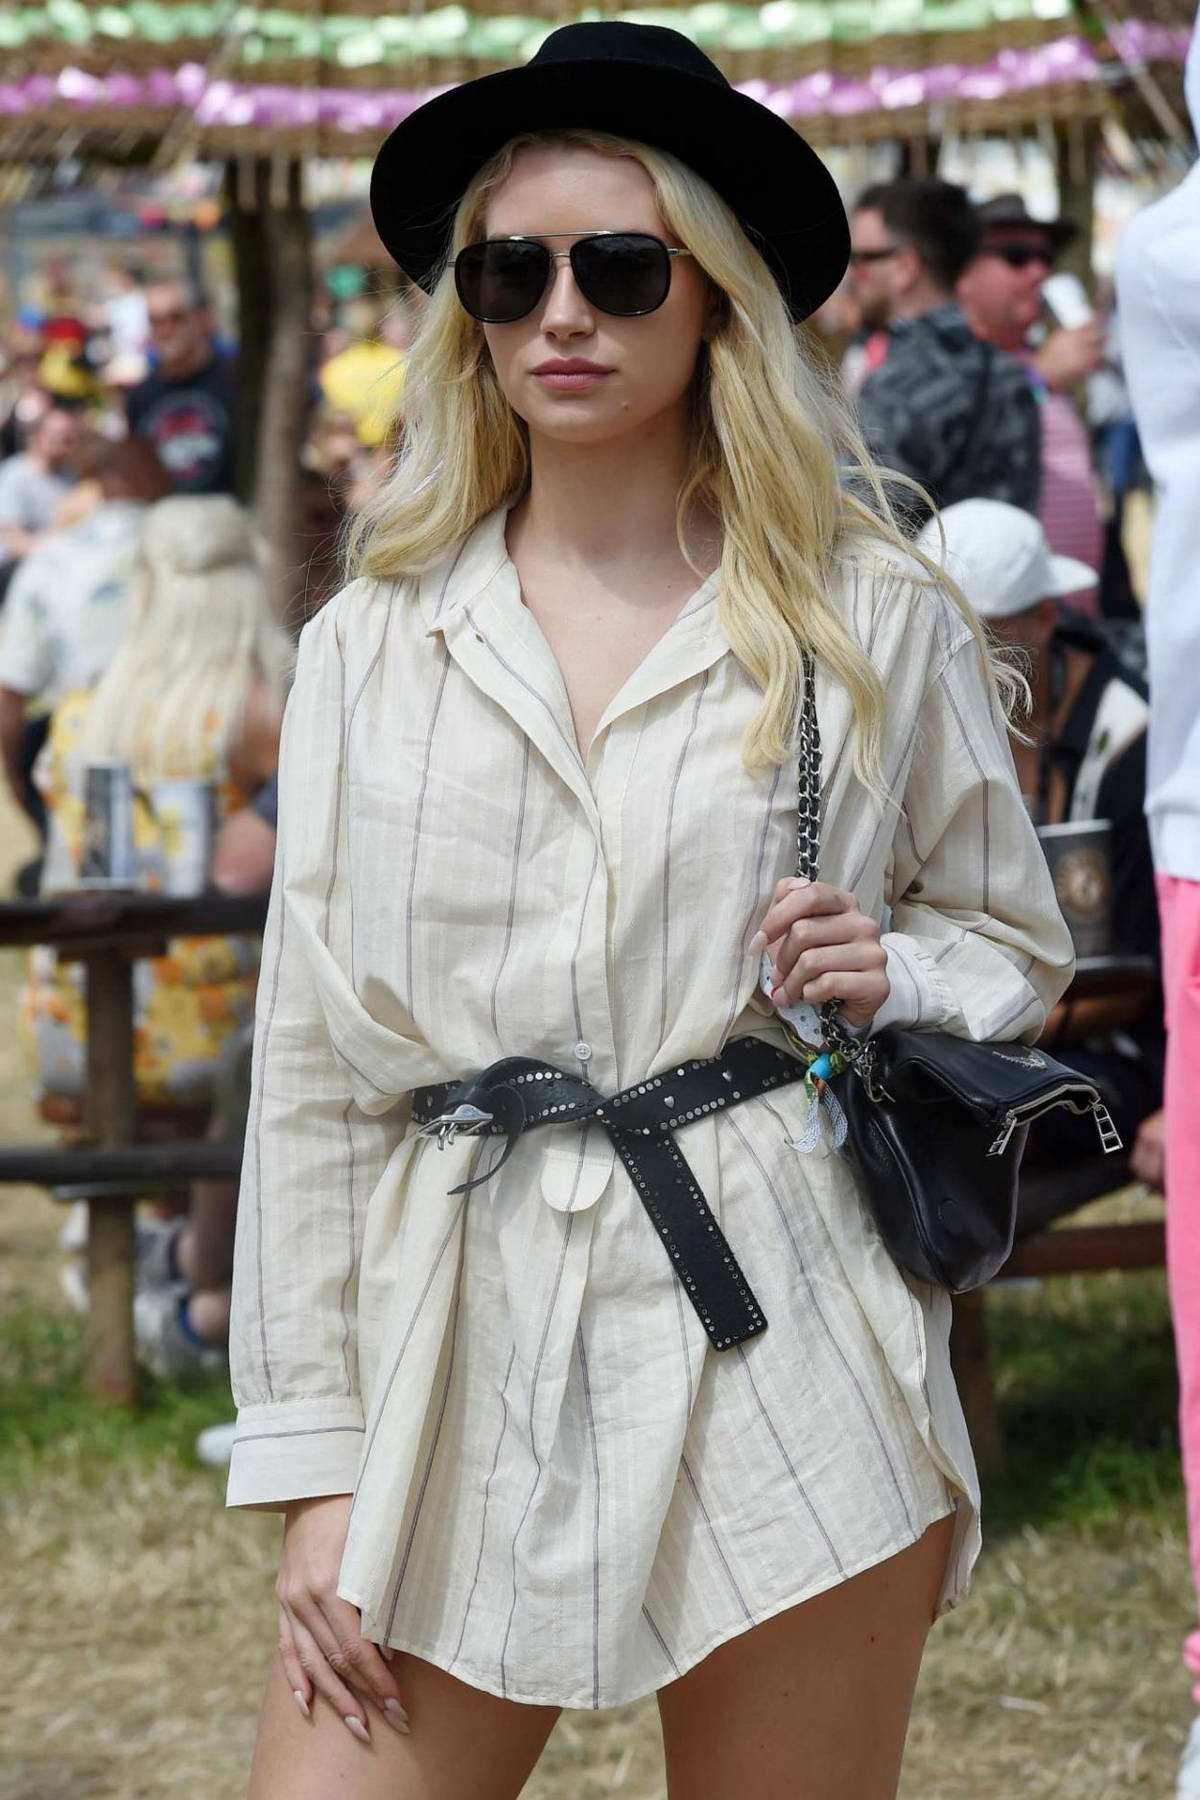 Lottie Moss attends the 2019 Glastonbury Festival in Pilton, Somerset, UK